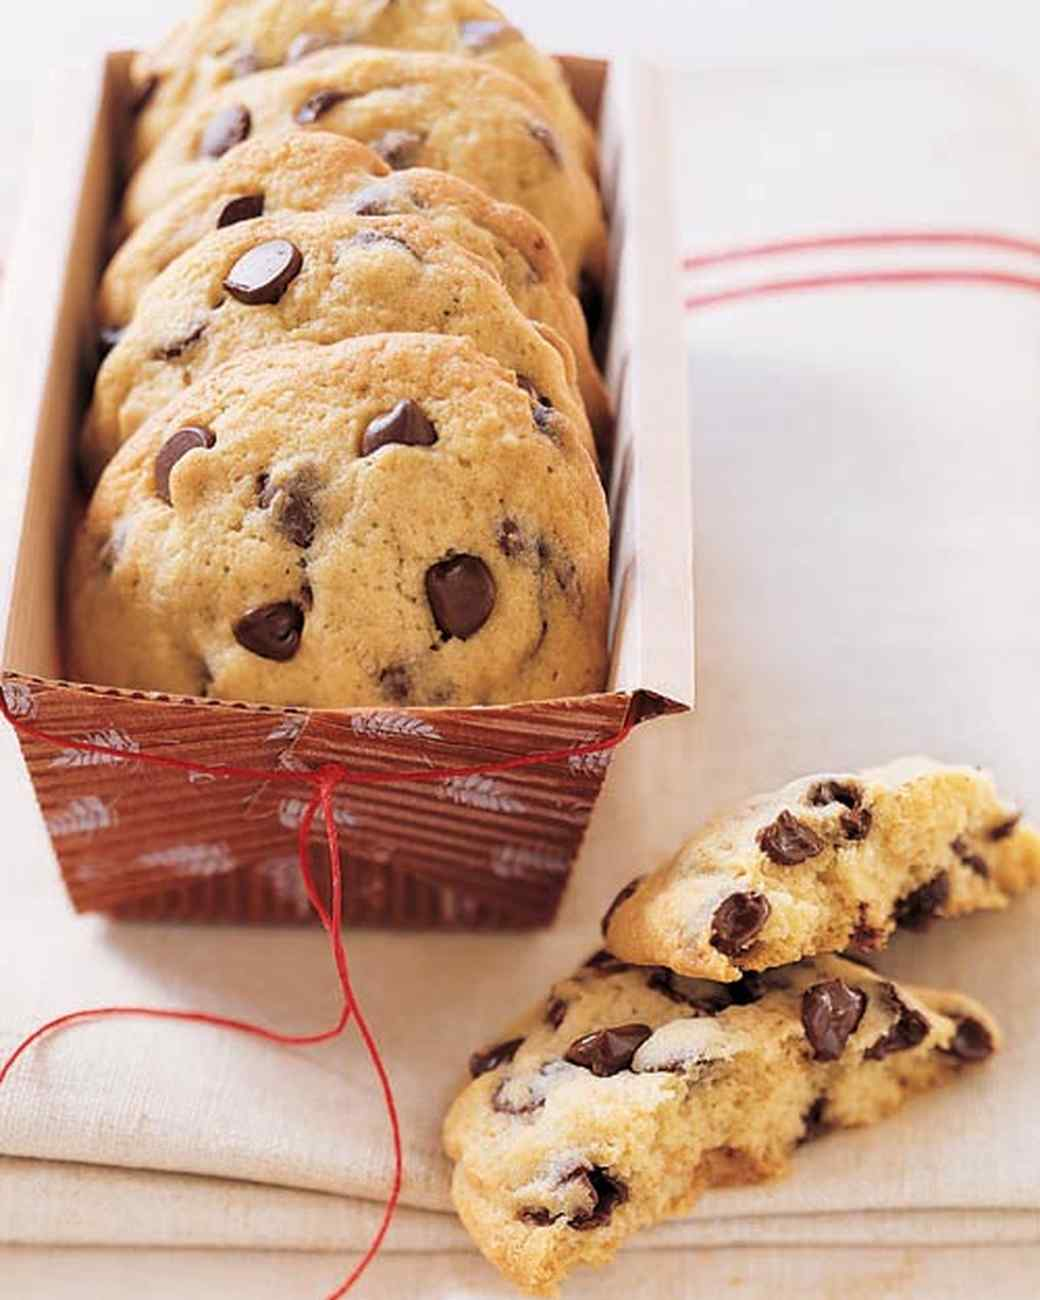 Chocolate Chip Cookie Recipes | Martha Stewart